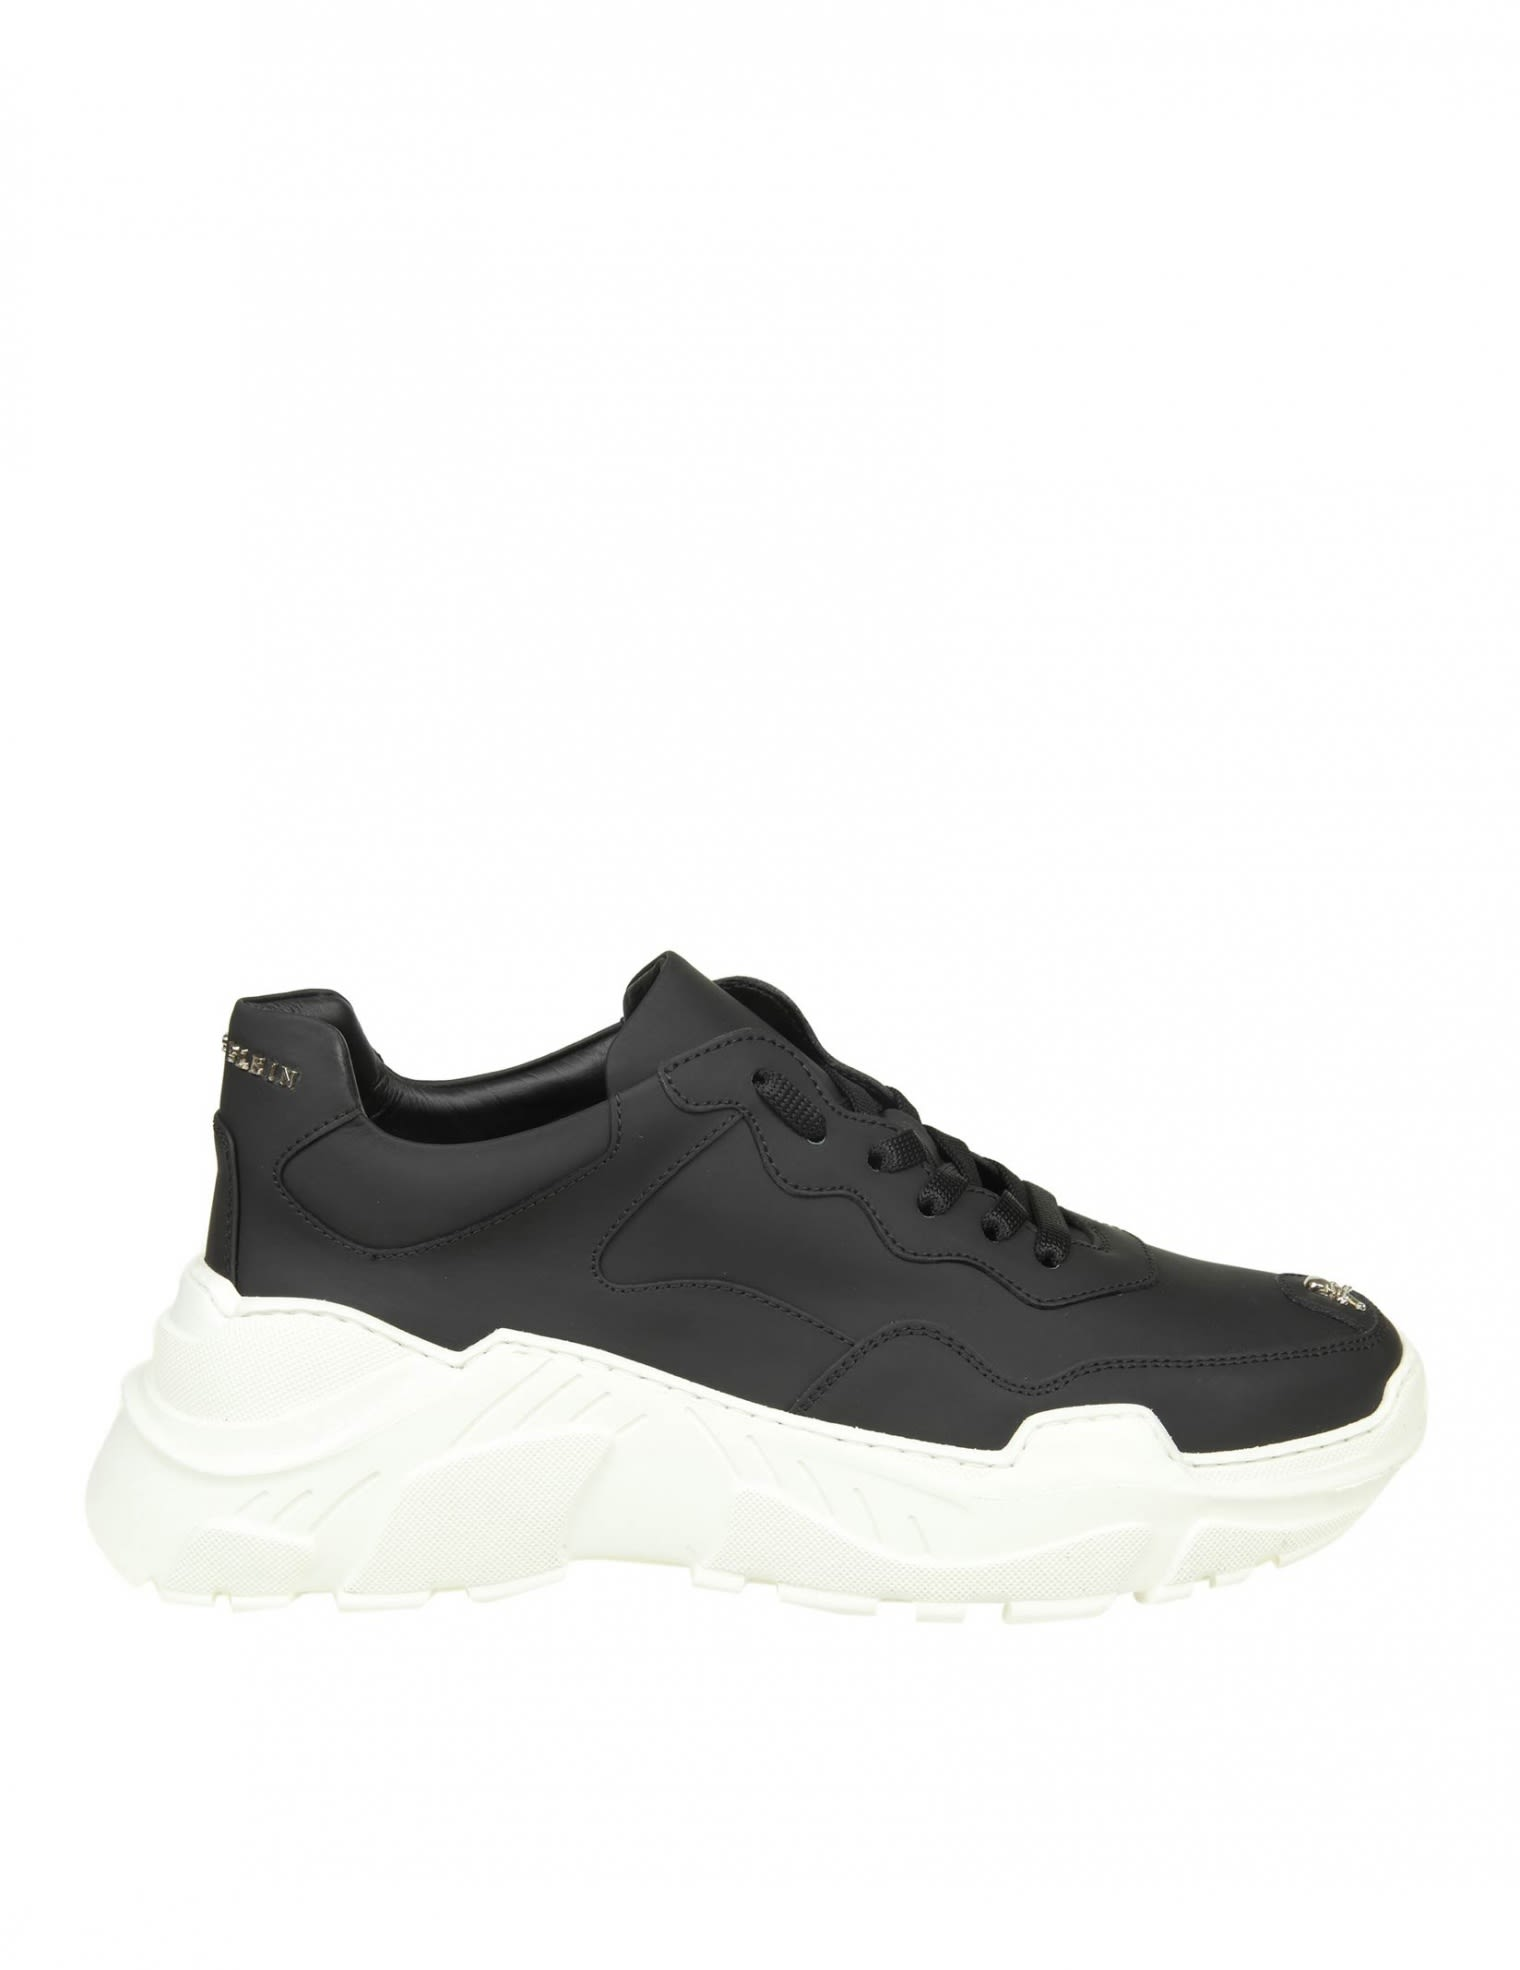 PHILIPP PLEIN SNEAKERS RUNNER ORIGINAL IN BLACK LEATHER